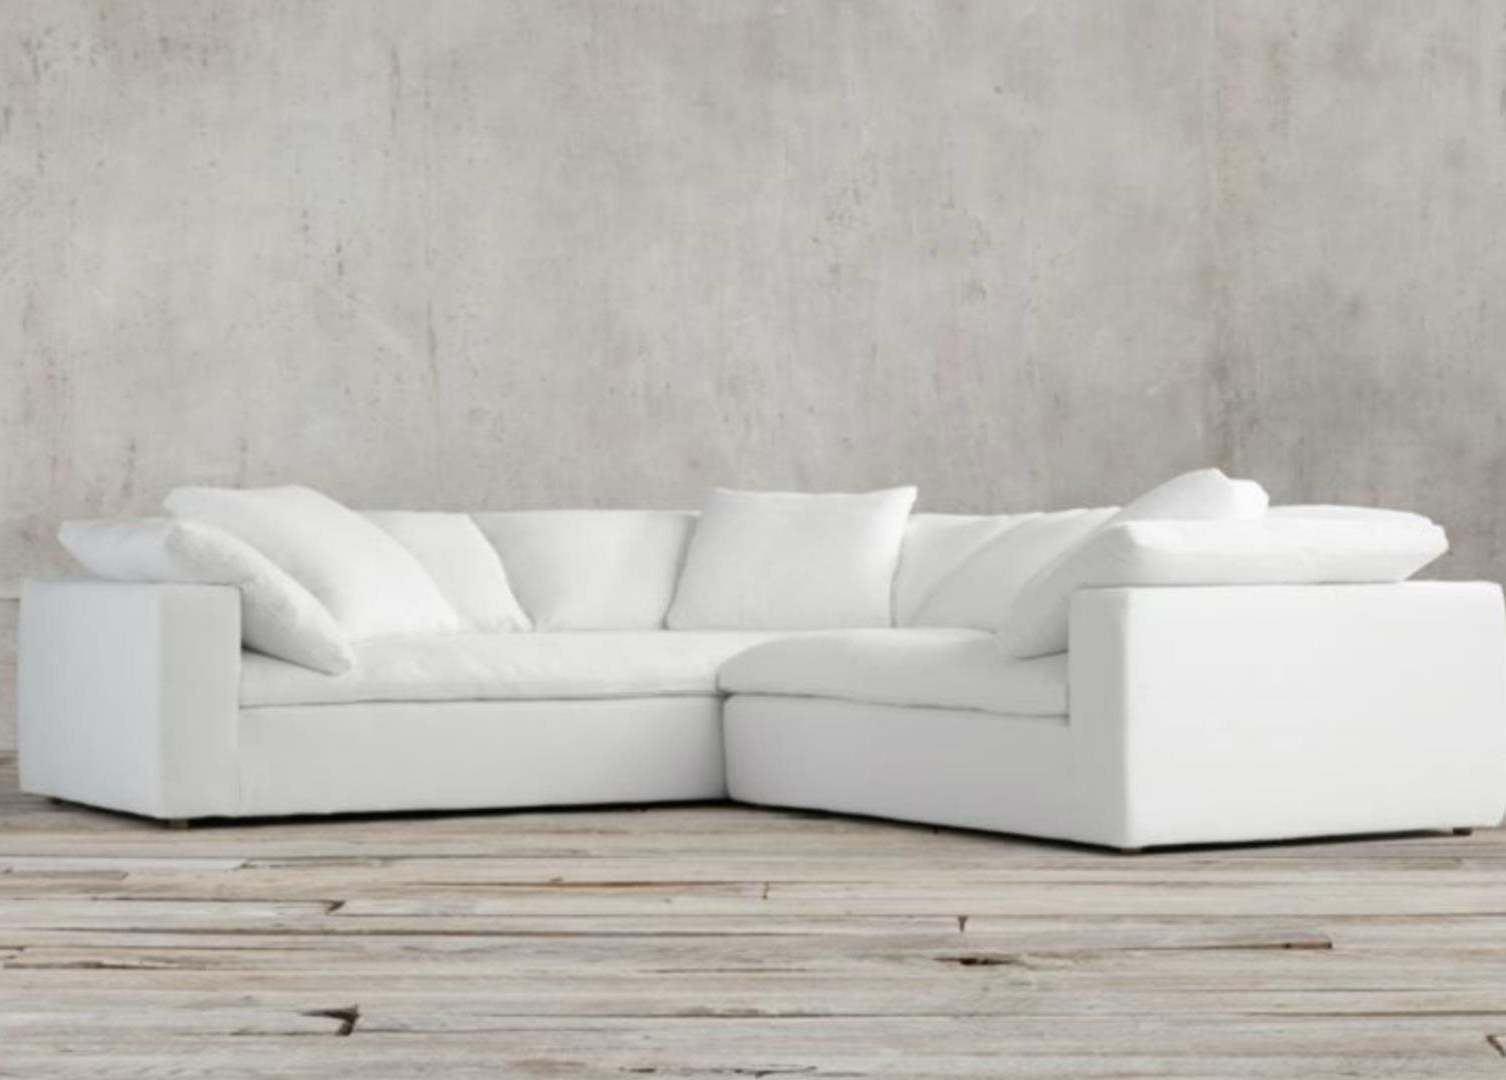 Well Known Restoration Hardware Cloud Modular Slipcovered Sofa: For Sale In Pertaining To Joining Hardware Sectional Sofas (View 19 of 20)